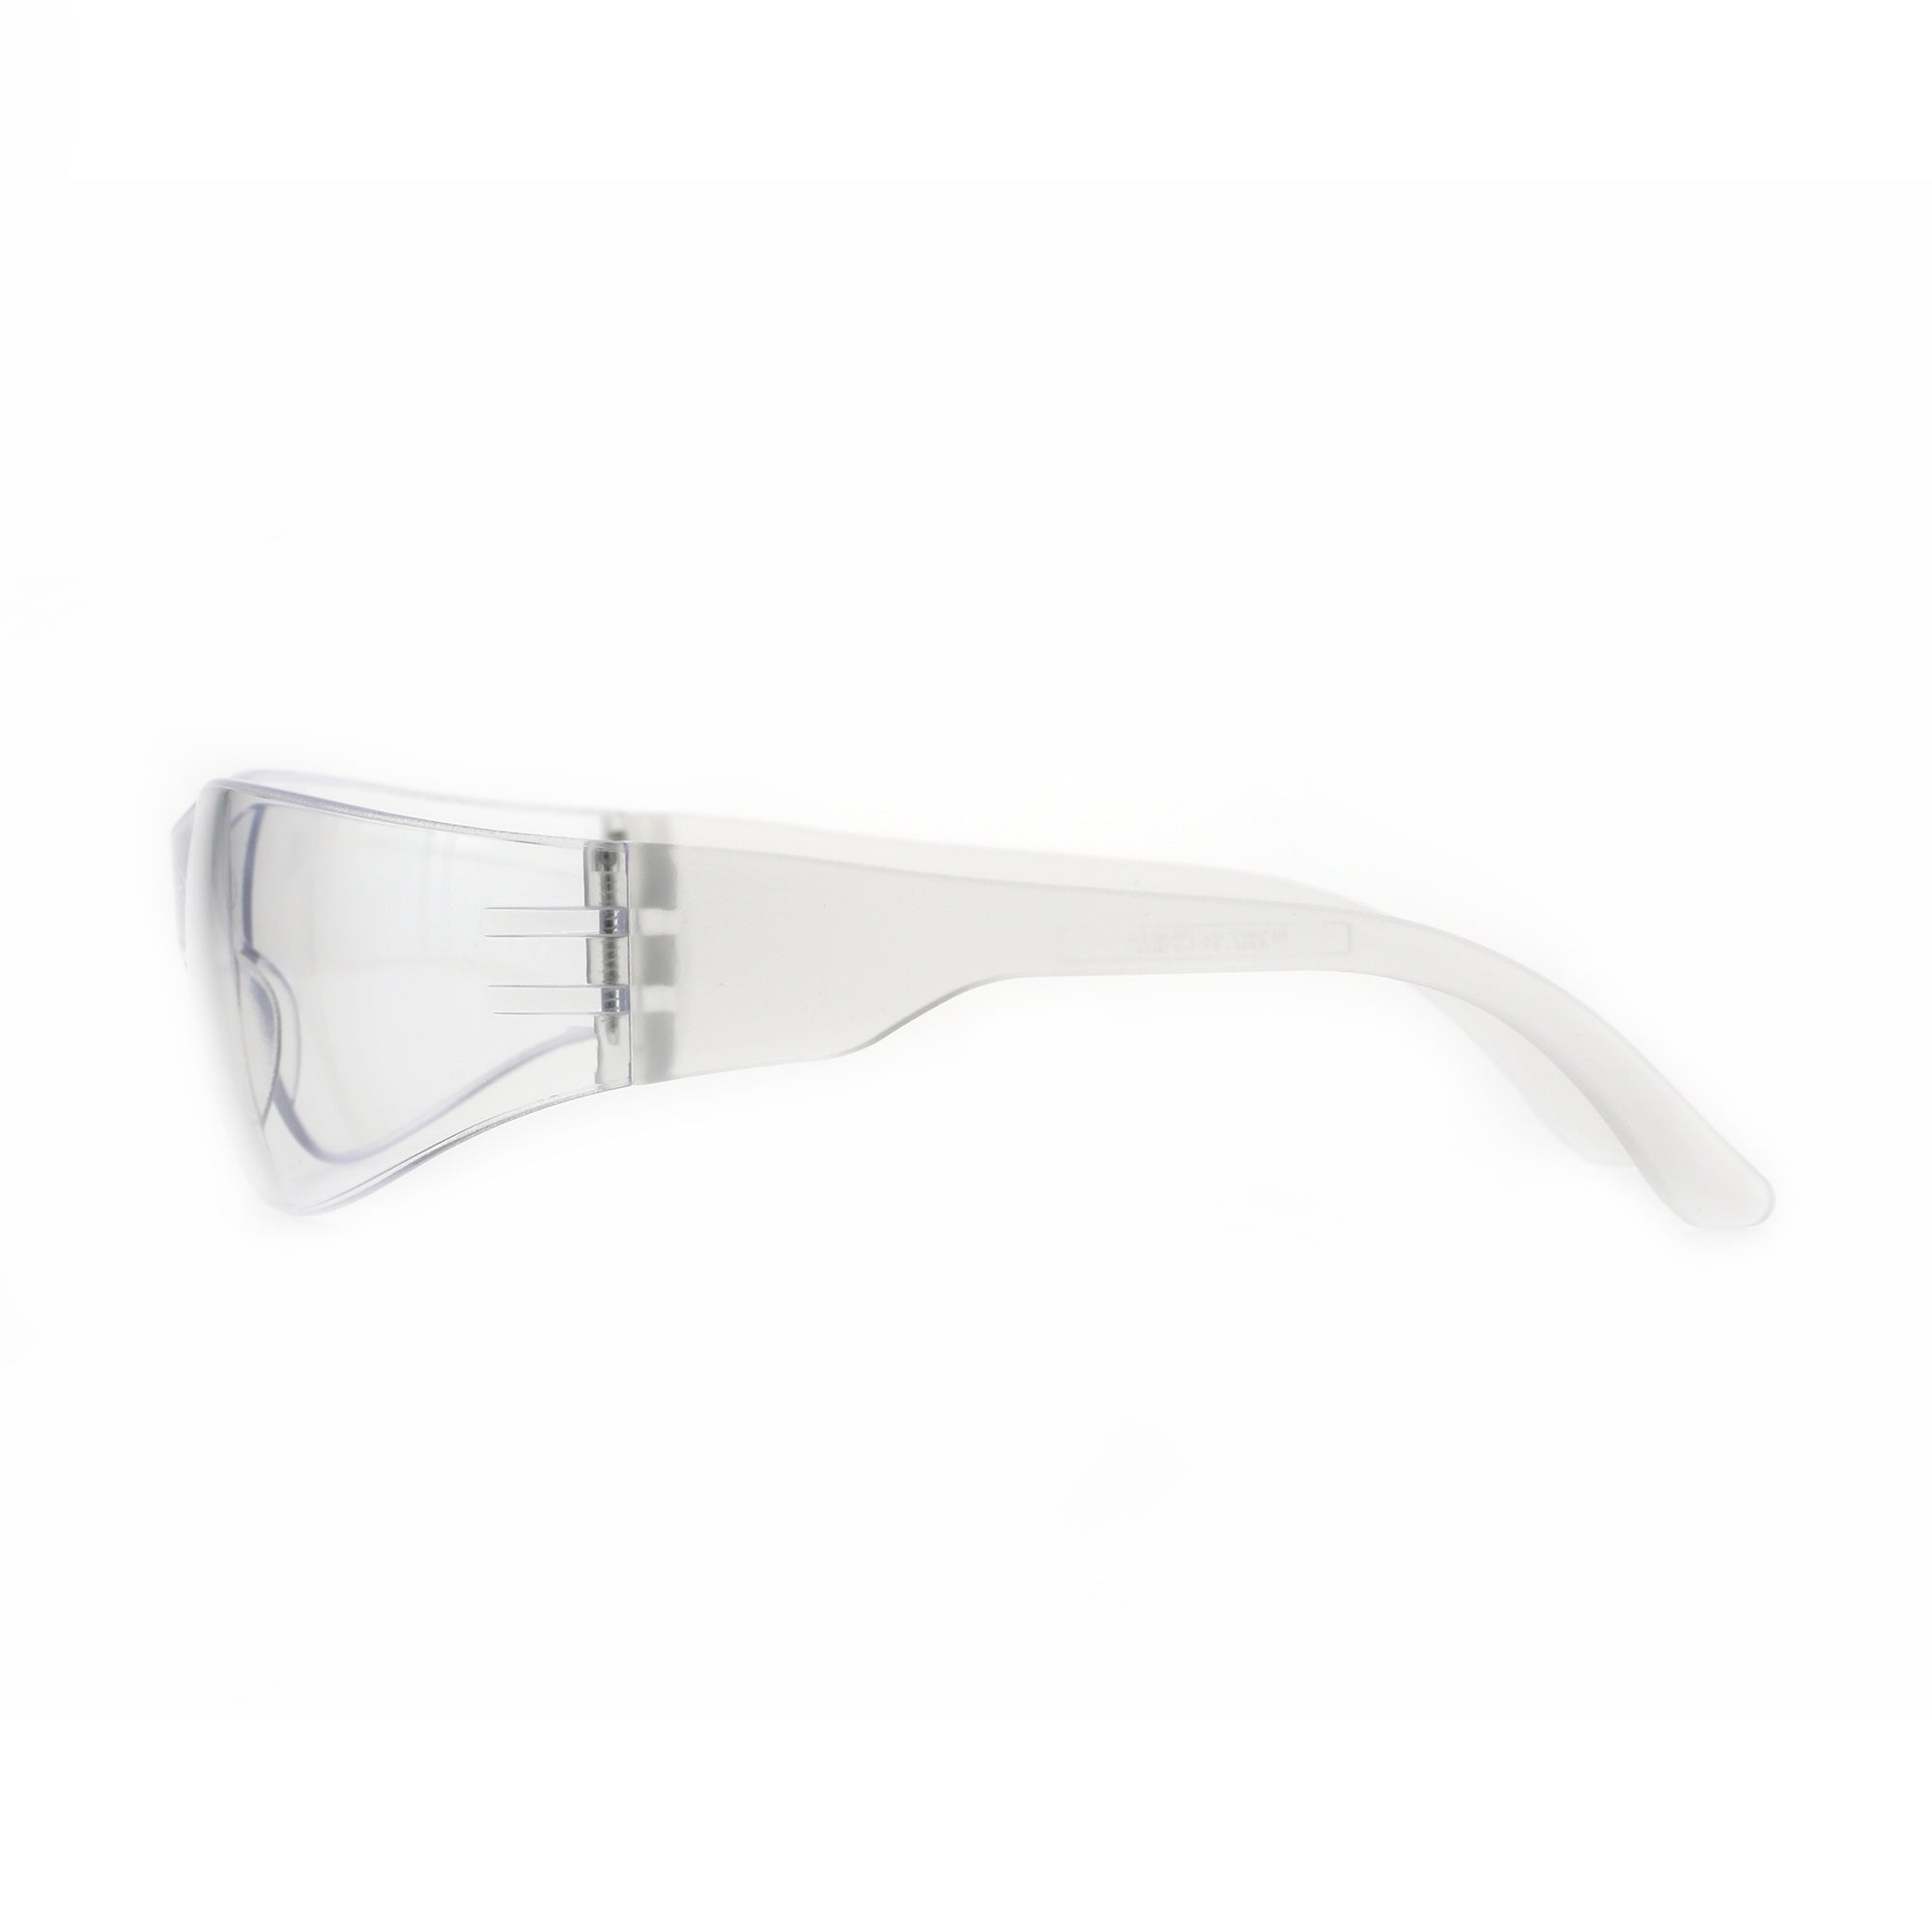 Pyramex™ Mini Intruder Eyewear for Kids with Clear Temples